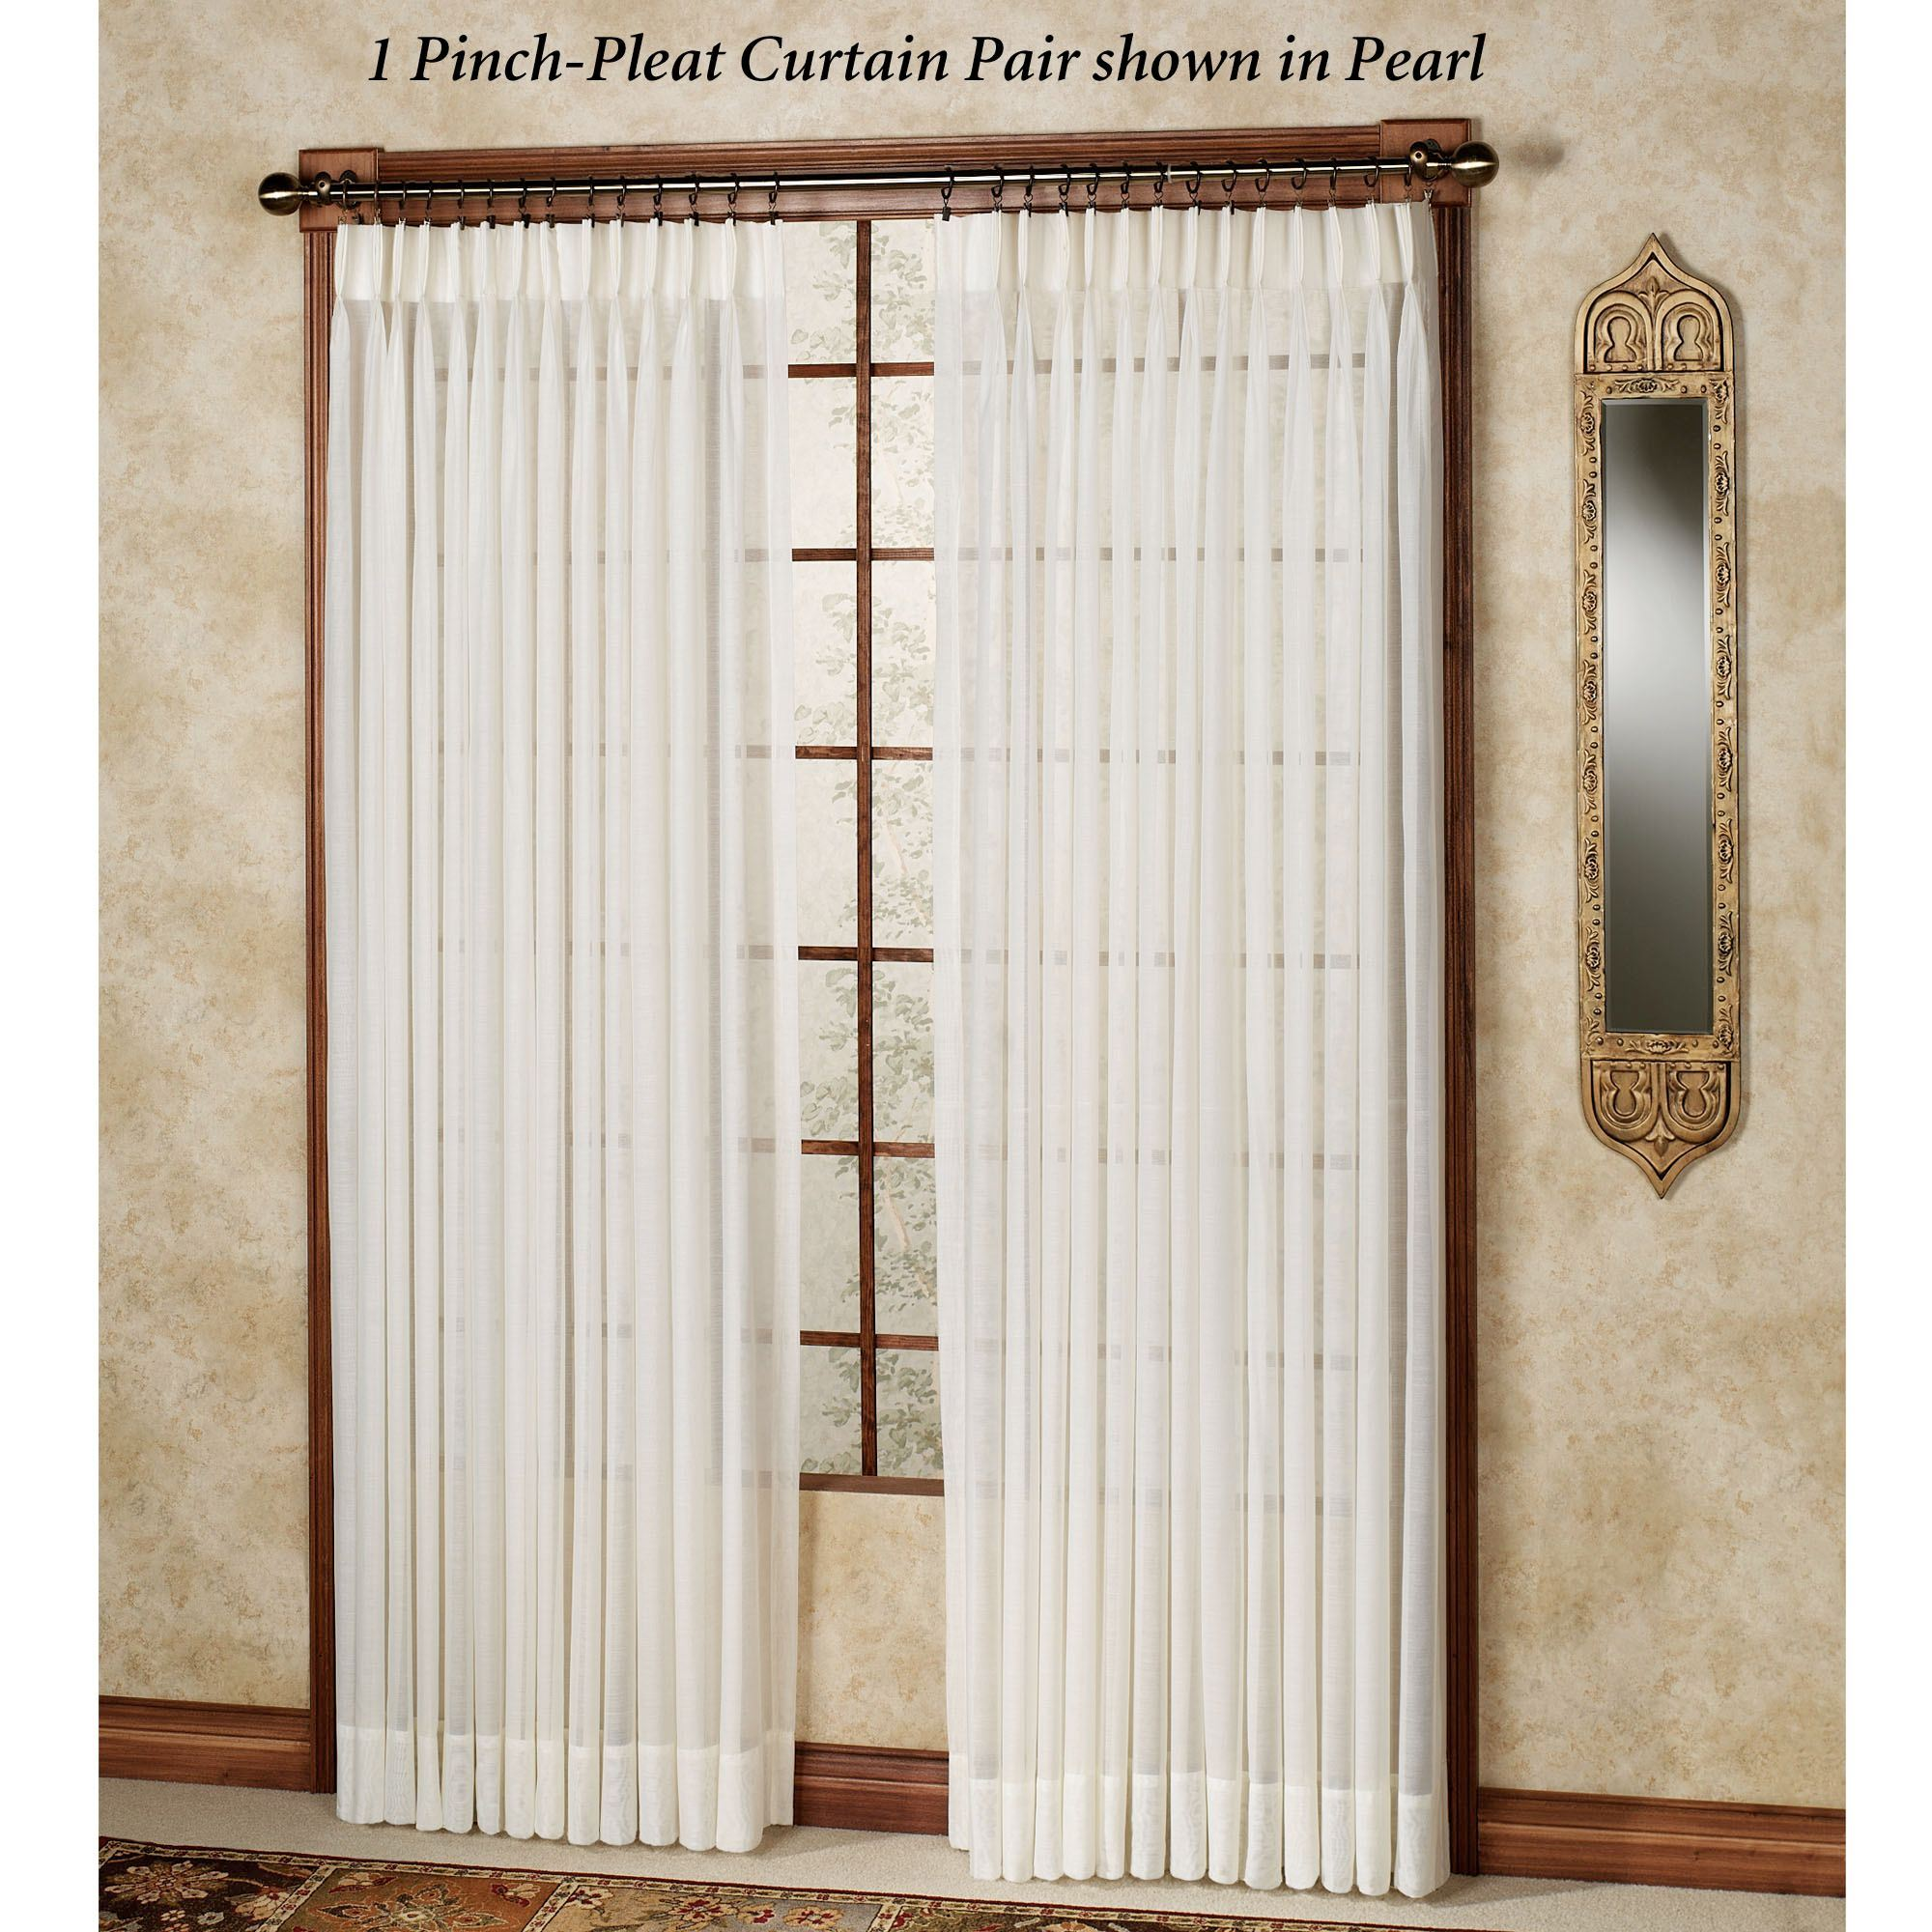 Splendor Drapery Pinch Pleat Curtain Pair